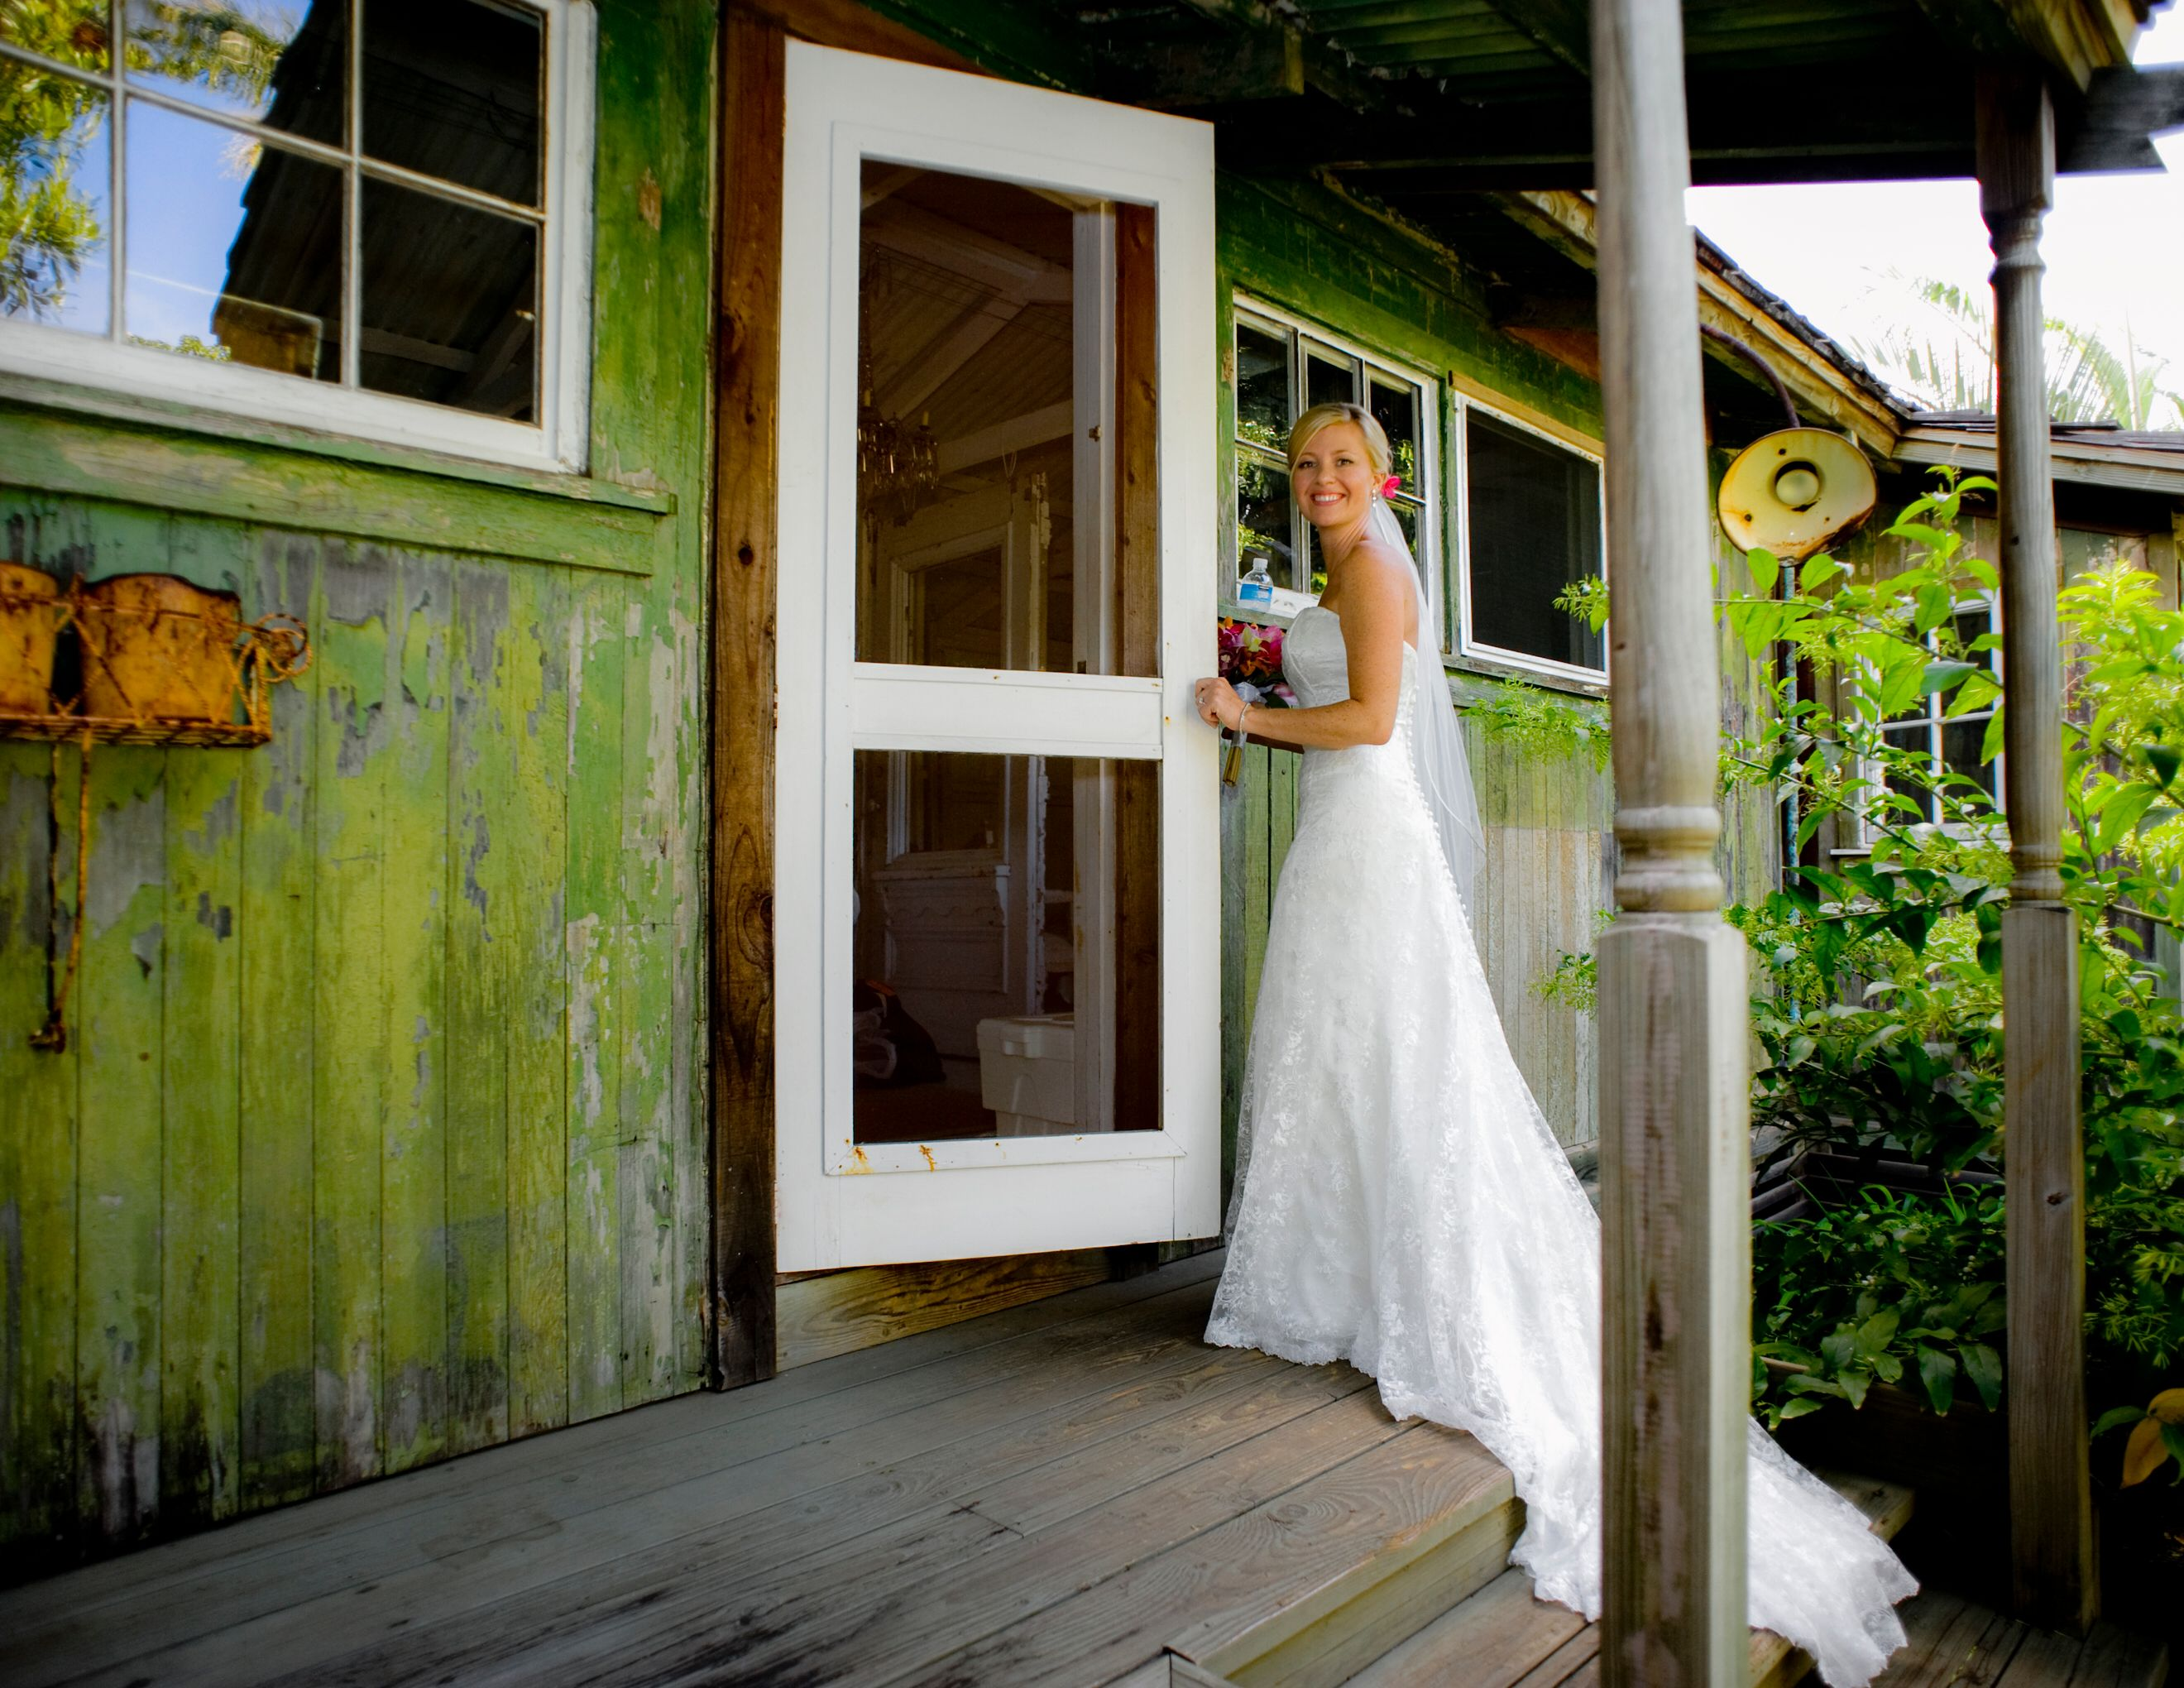 Wedding photography at Haiku Mill, Maui